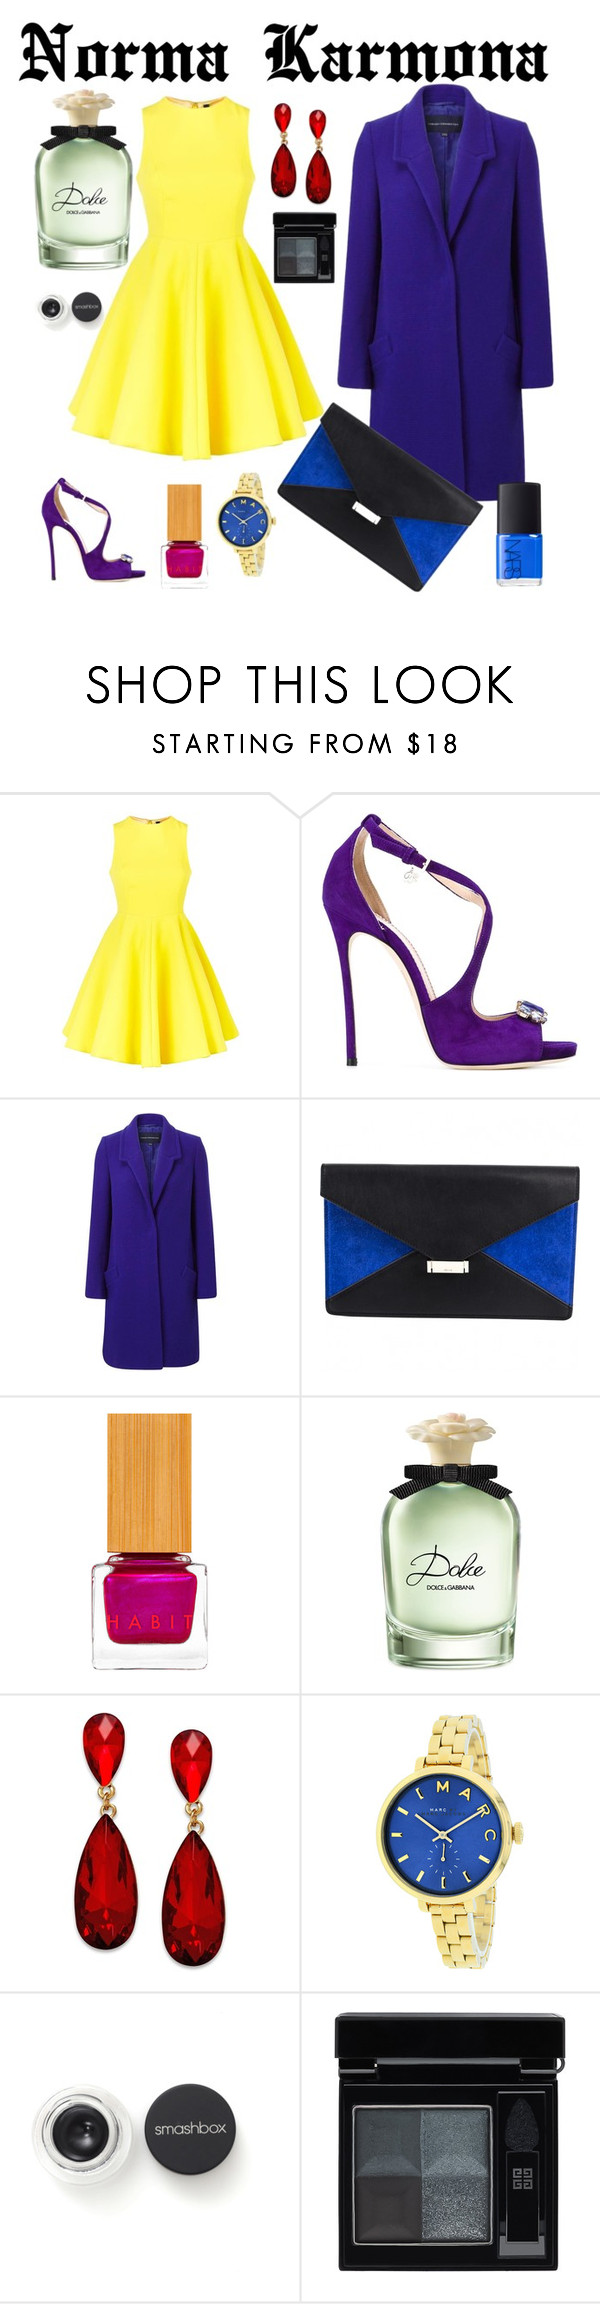 """""""Norma Karmona"""" by normacarmona on Polyvore featuring moda, AQ/AQ, Dsquared2, French Connection, Habit Cosmetics, Dolce&Gabbana, Style & Co., Marc Jacobs, Smashbox y Givenchy"""